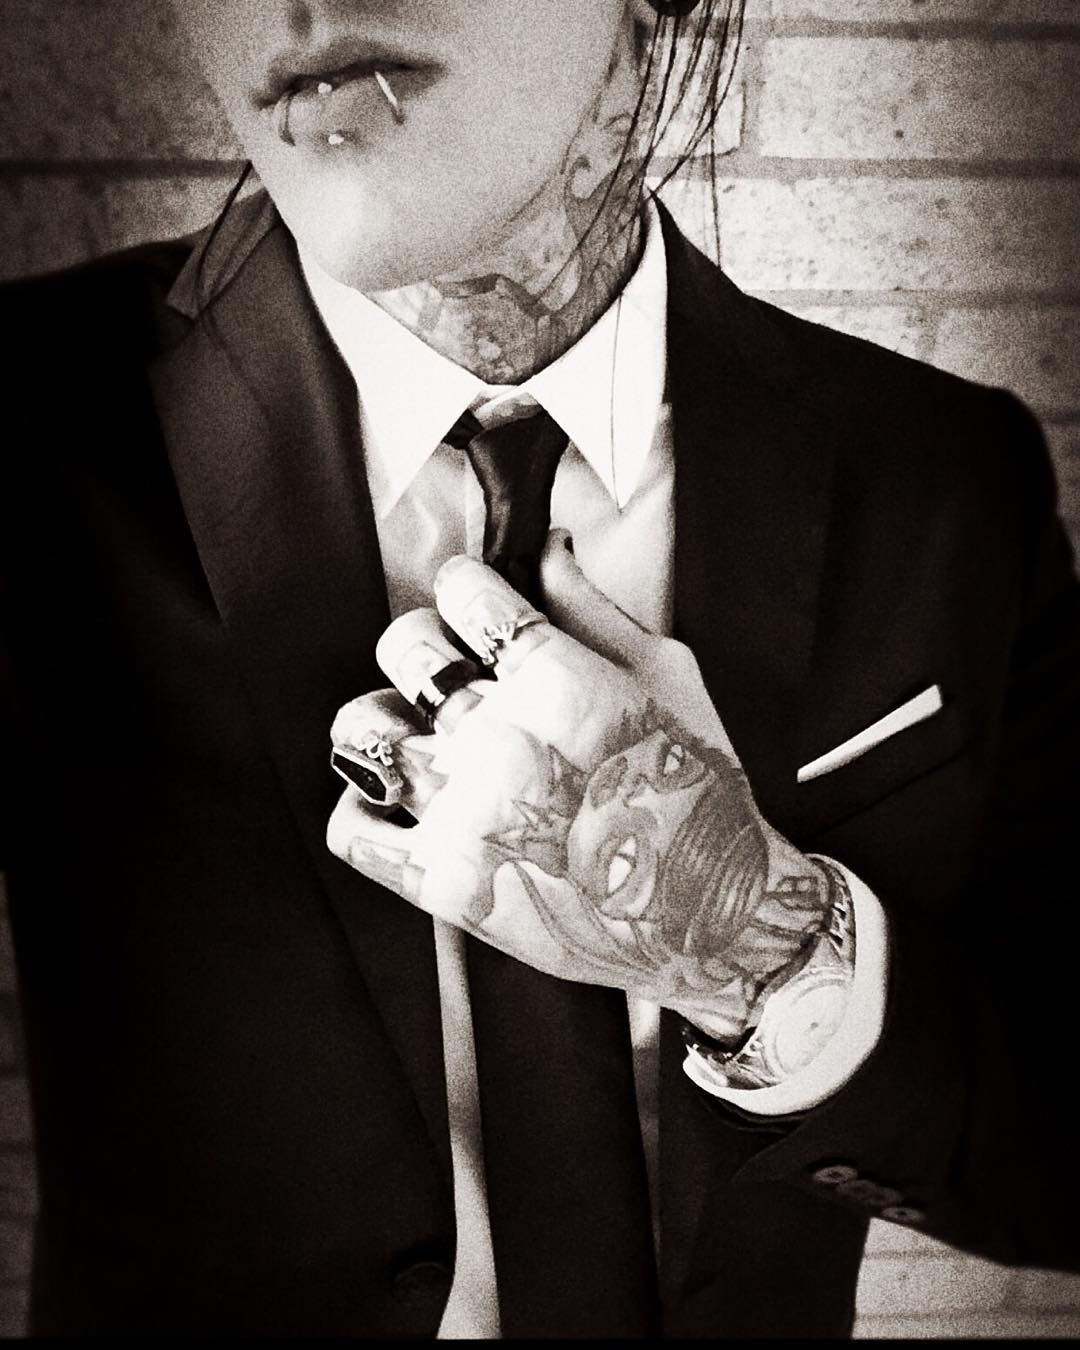 Chris Motionless Motionless In White Anyone Asking For